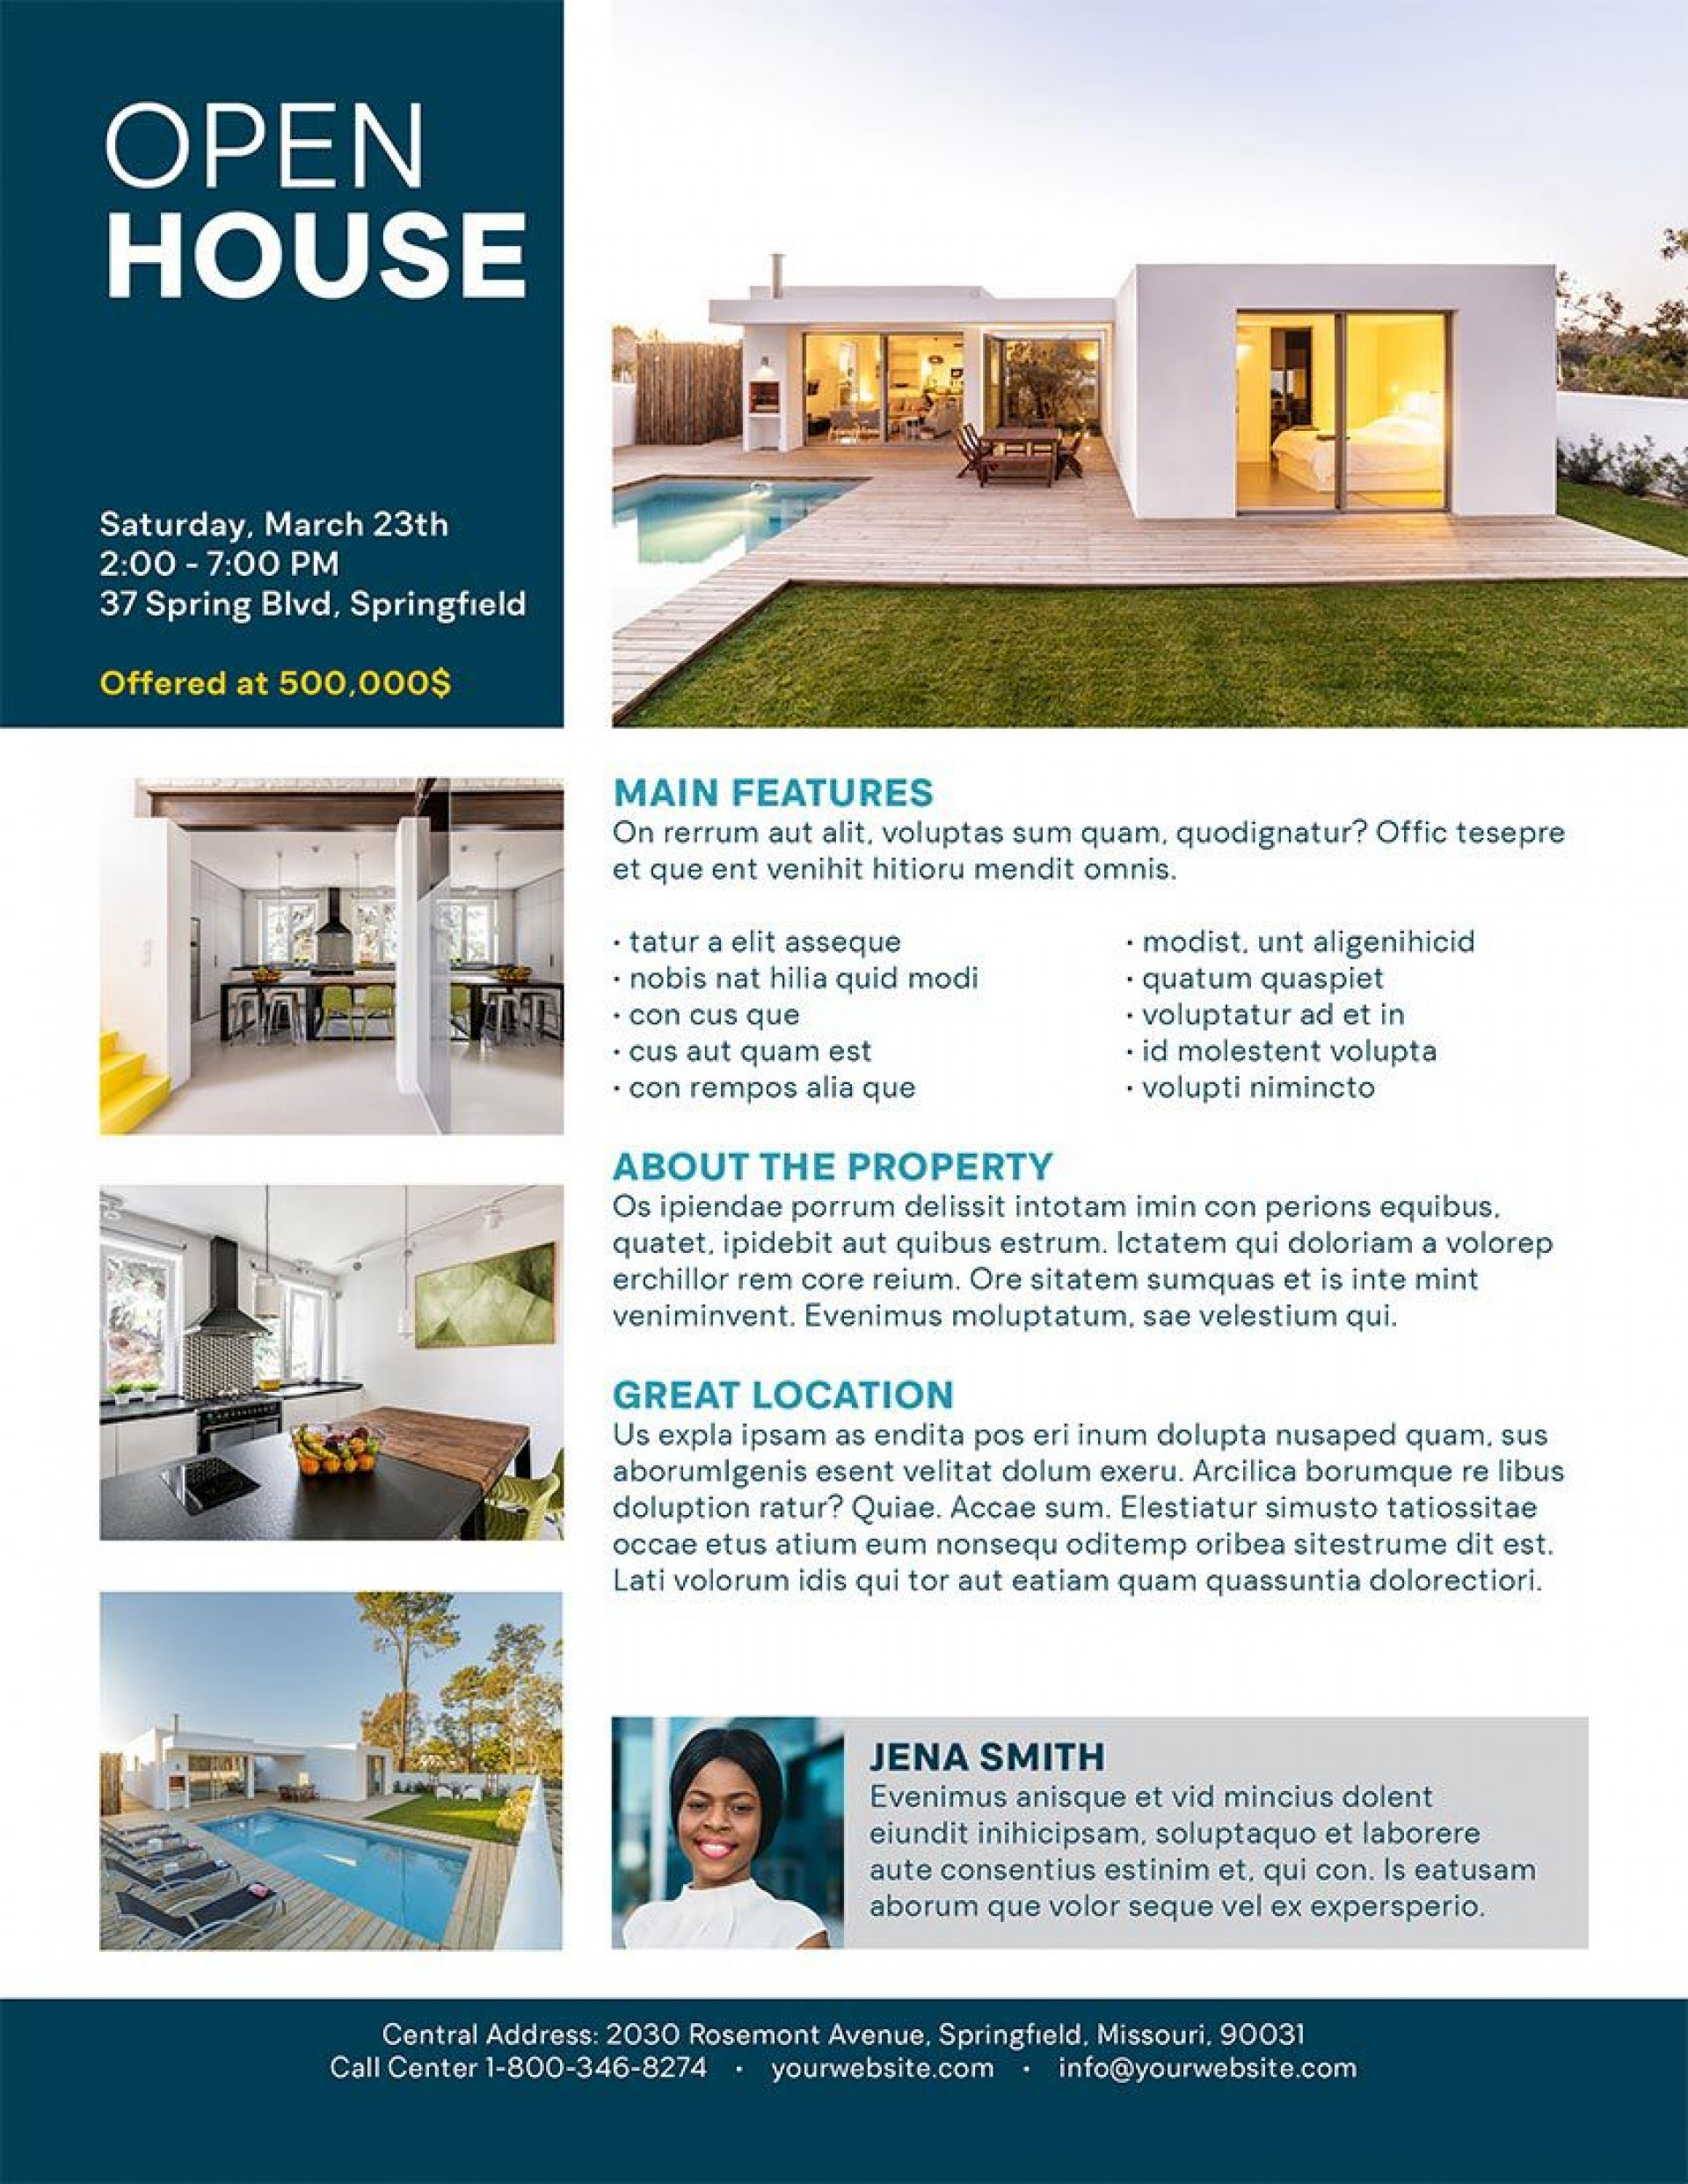 001 Archaicawful Open House Flyer Template Example  Templates Word Free Microsoft Real Estate1920